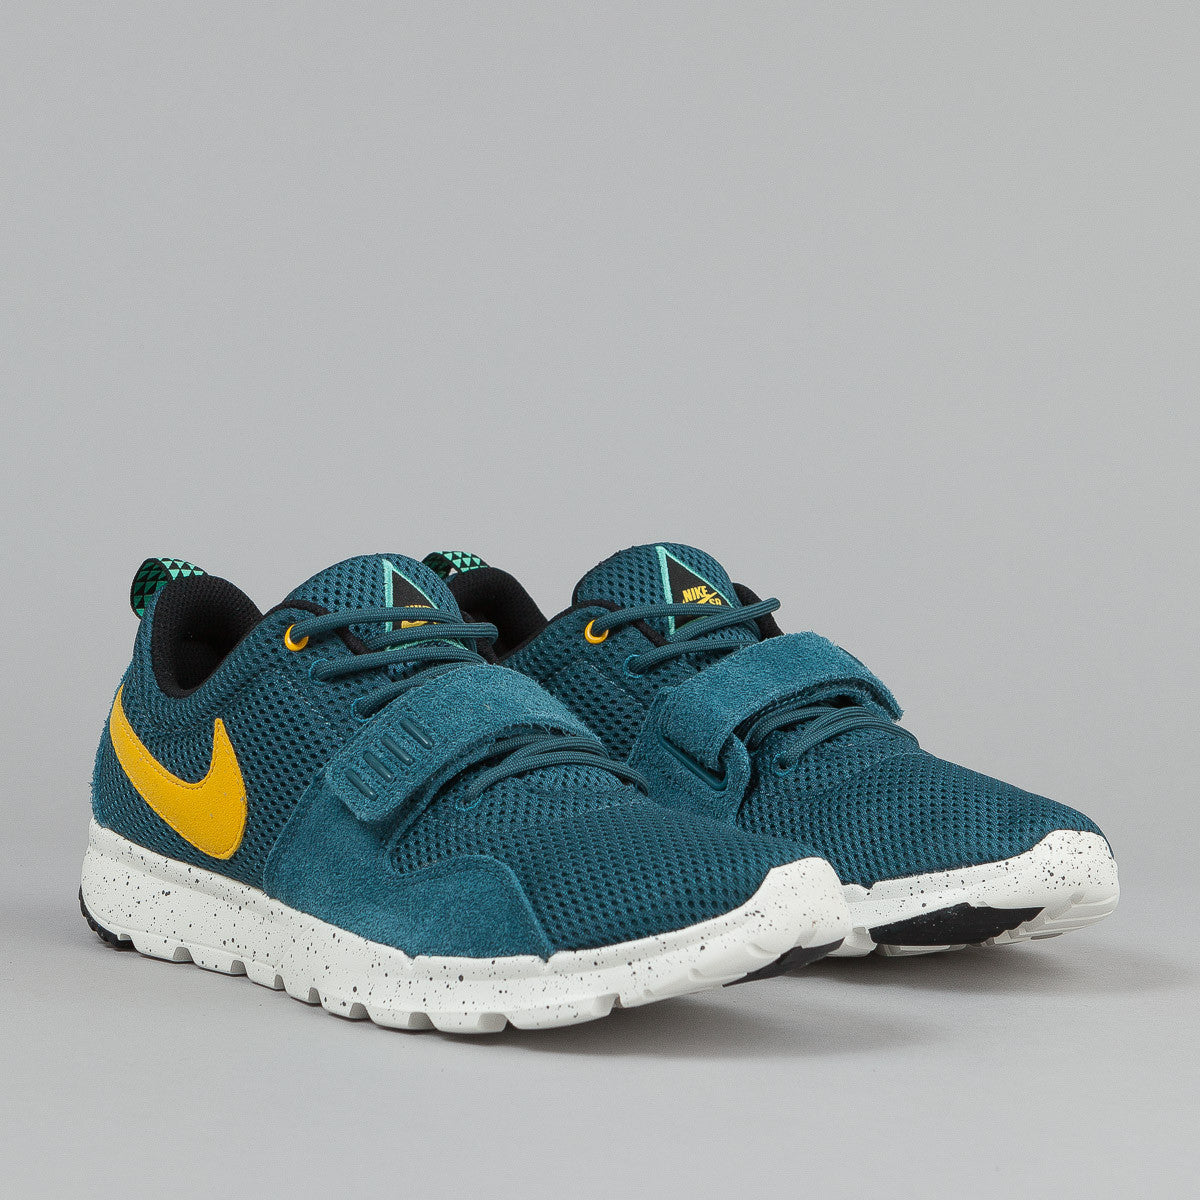 Nike SB Trainerendor Shoes - Night Factor / Varsity Maize / Sail